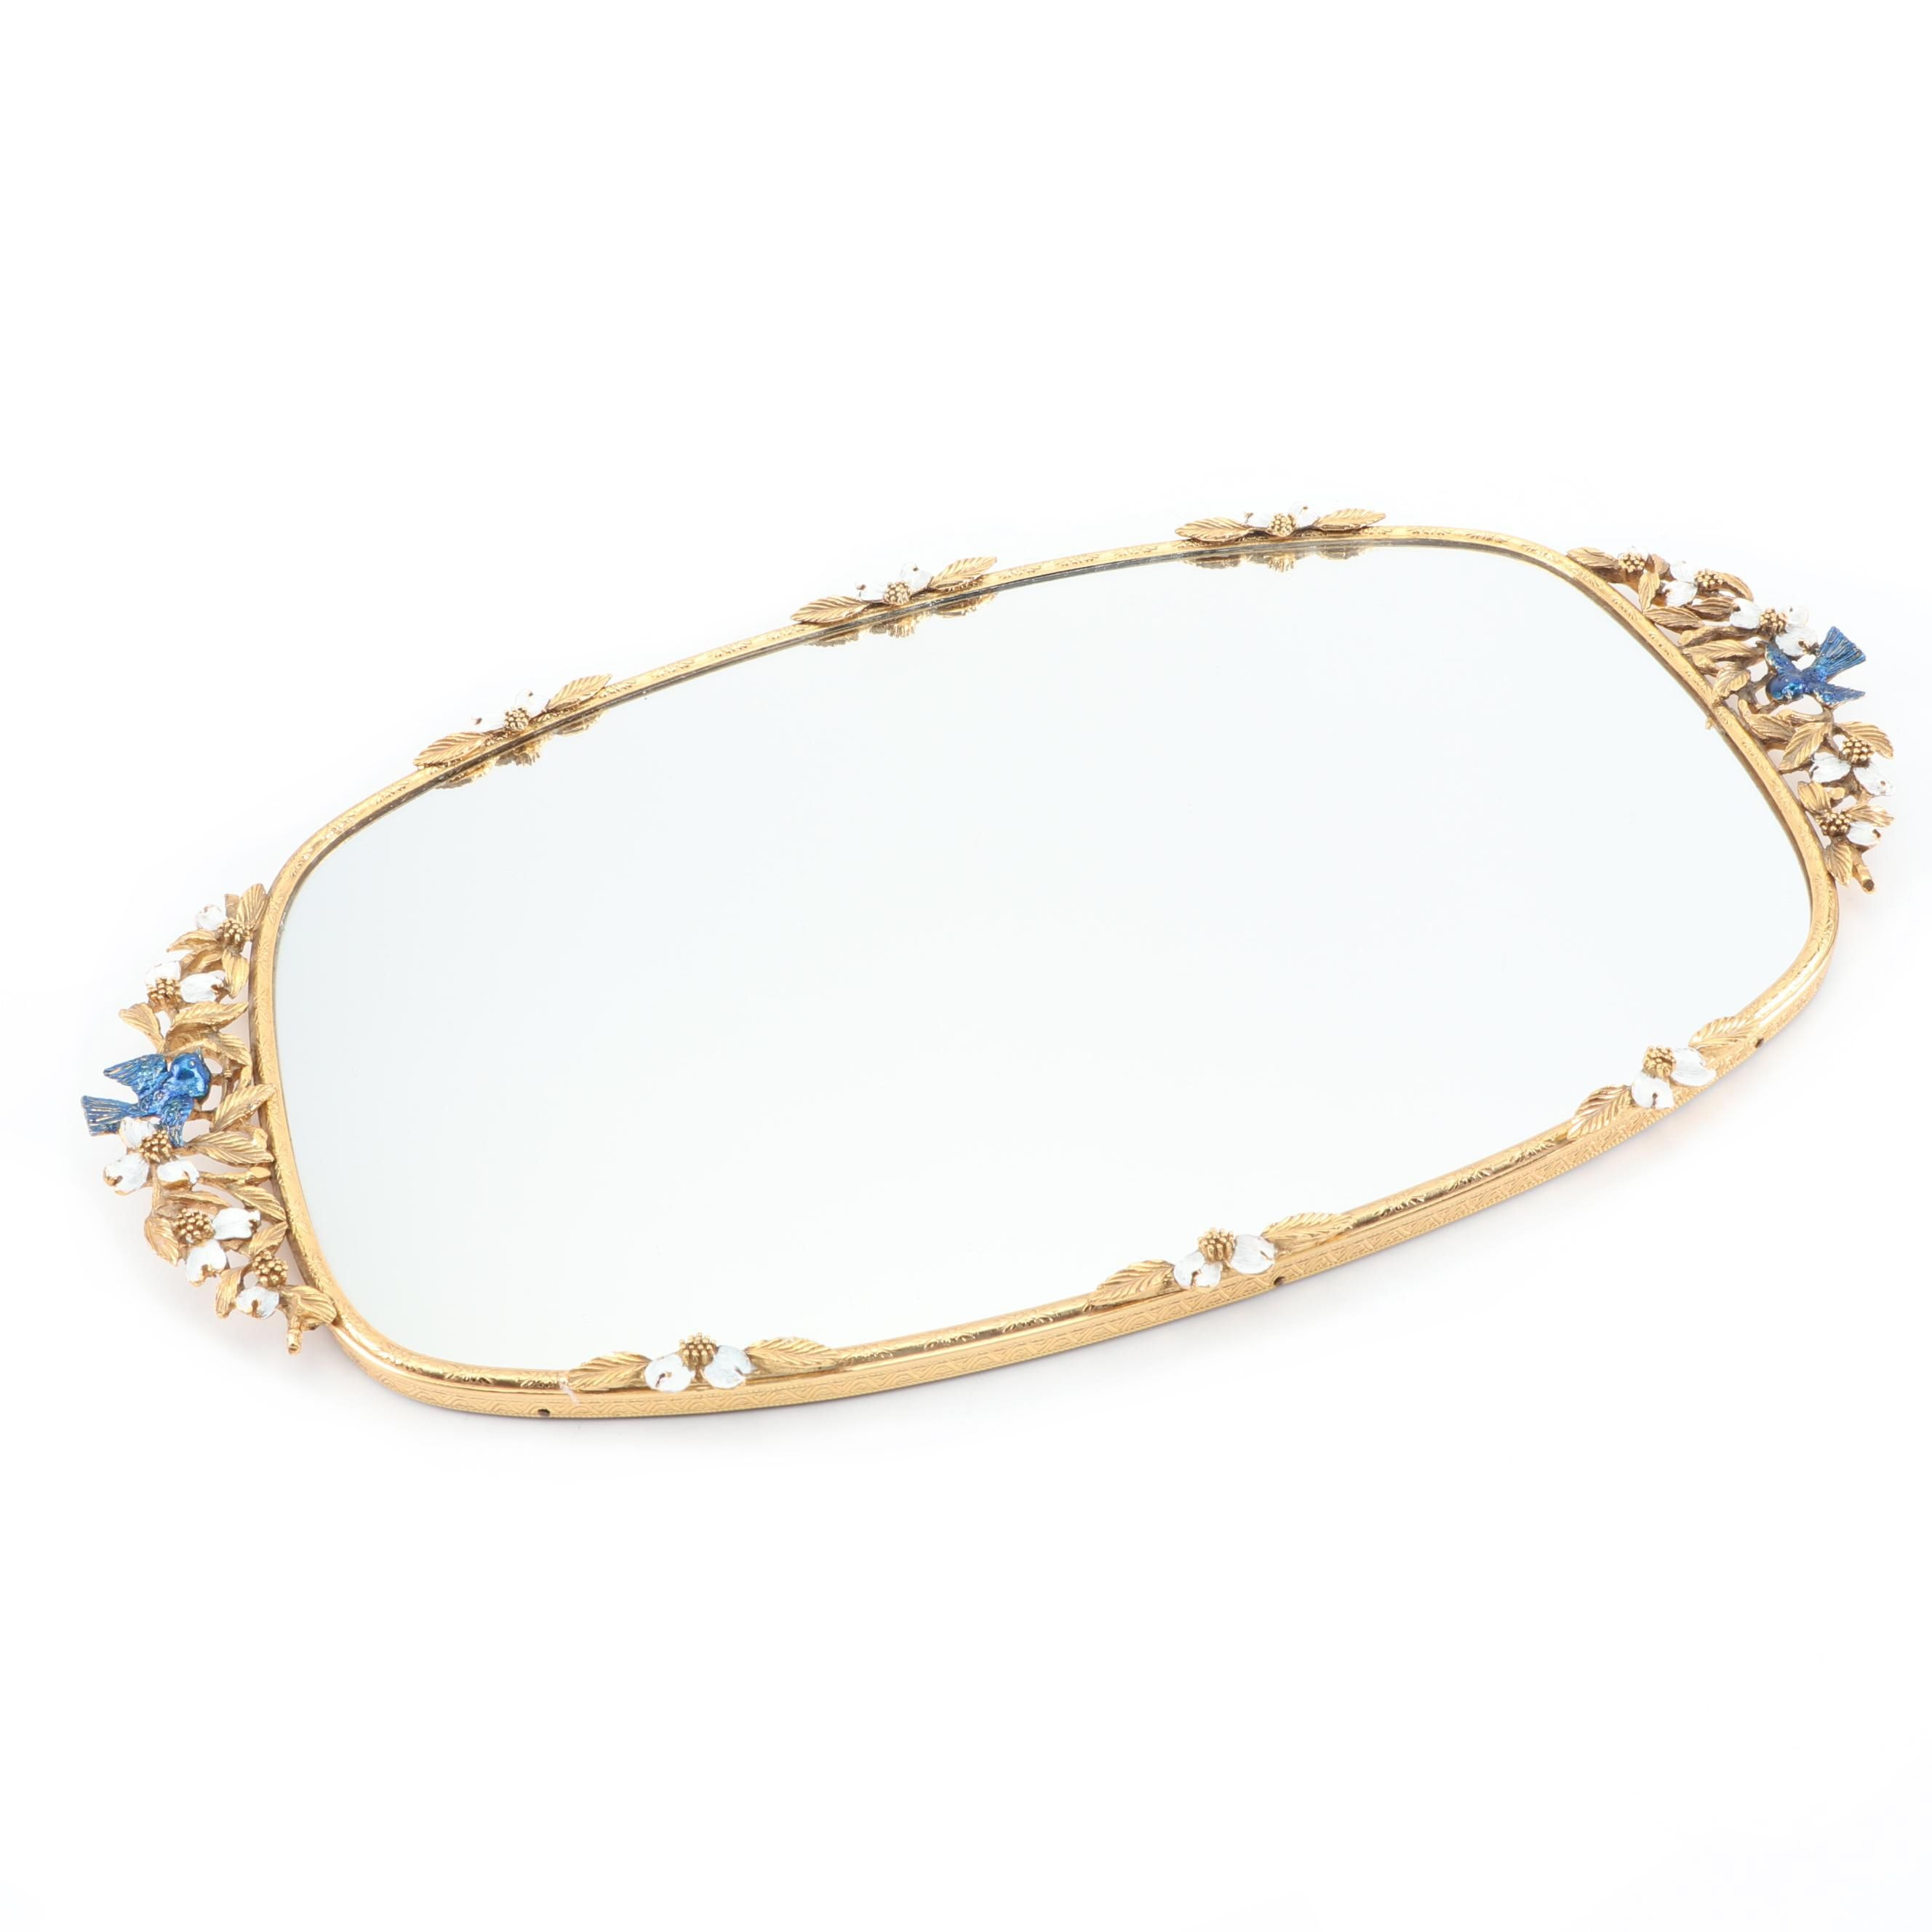 Vintage Gold-Toned Foliate Motif Vanity Mirror with Blue Bird Accents